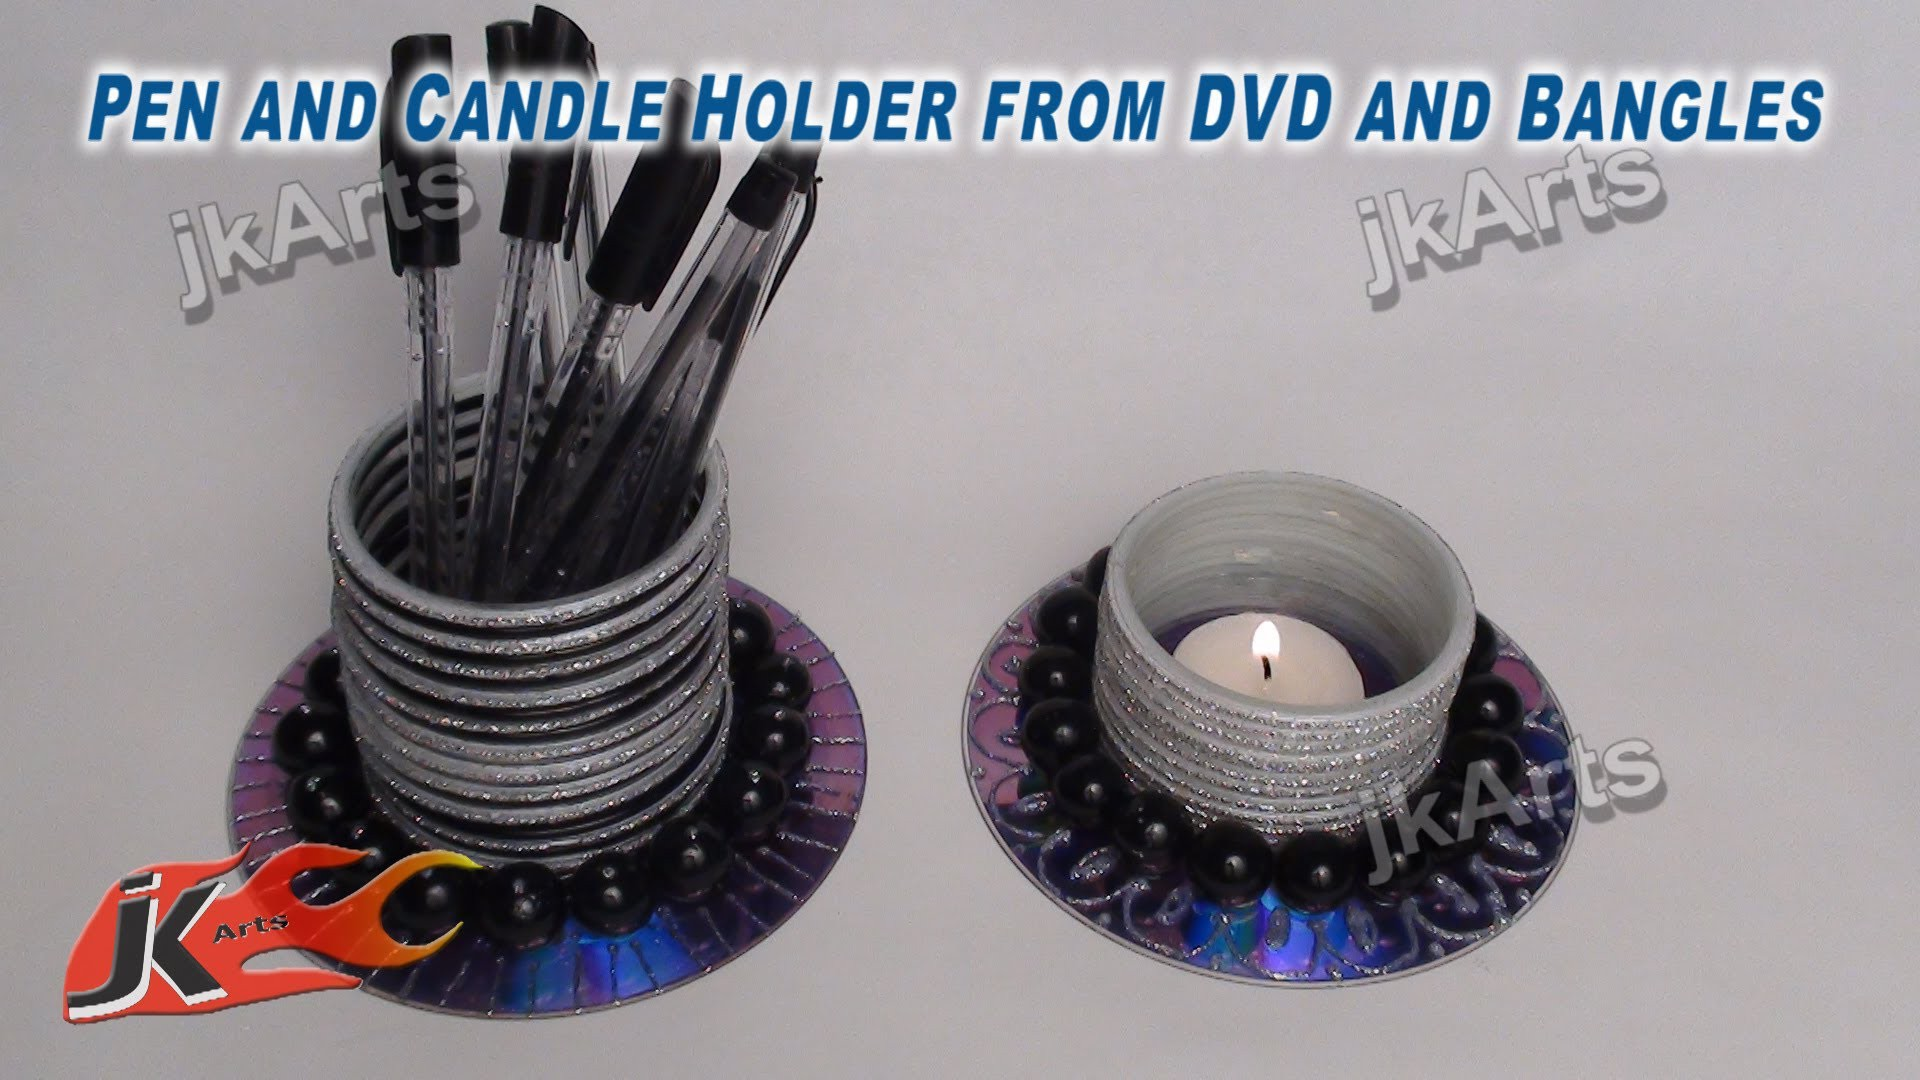 DIY How to make Pen and Candle Holder from DVD and Bangles -  JK Arts 312